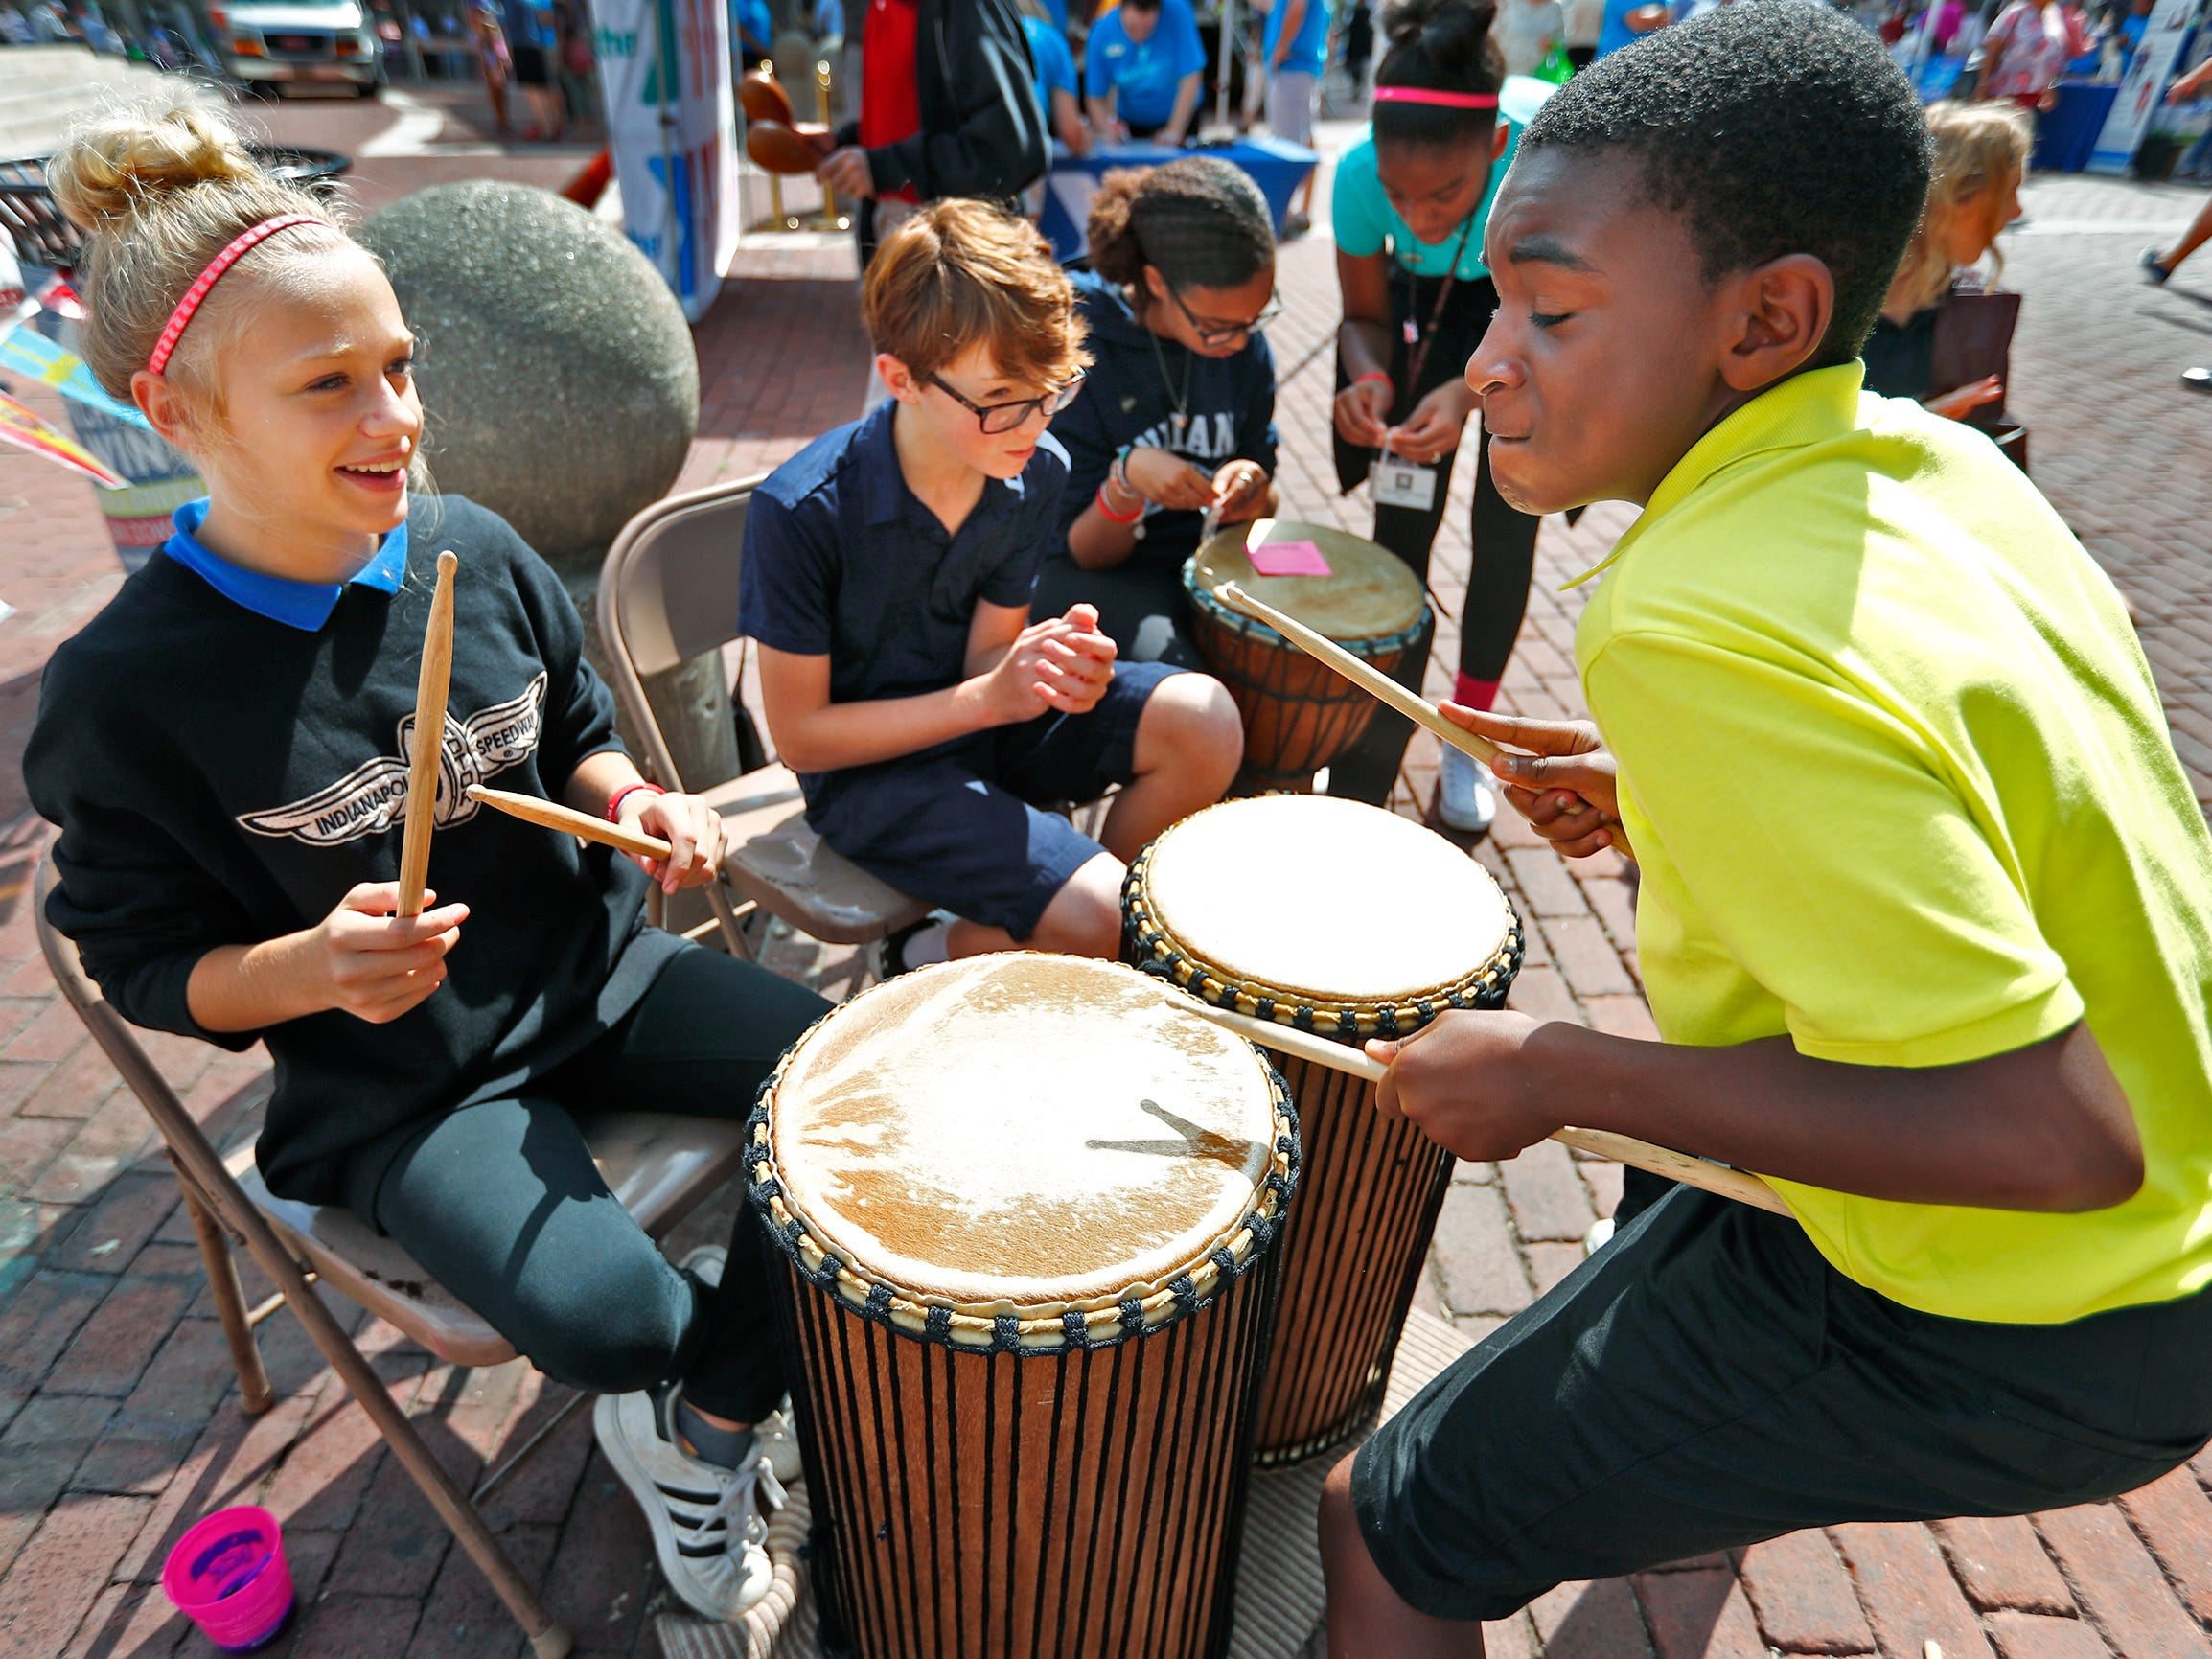 Center for Inquiry students Amy Bowling, from left, Sebastian Glass, Kiah Lehmkuhl, and Kendrick Carr play drums during the YMCA World Fest, on Monument Circle, Thursday, Sept. 13, 2018. YMCA of Greater Indianapolis hosts the free event that celebrates cultures including international food vendors, music, sports, and performers.